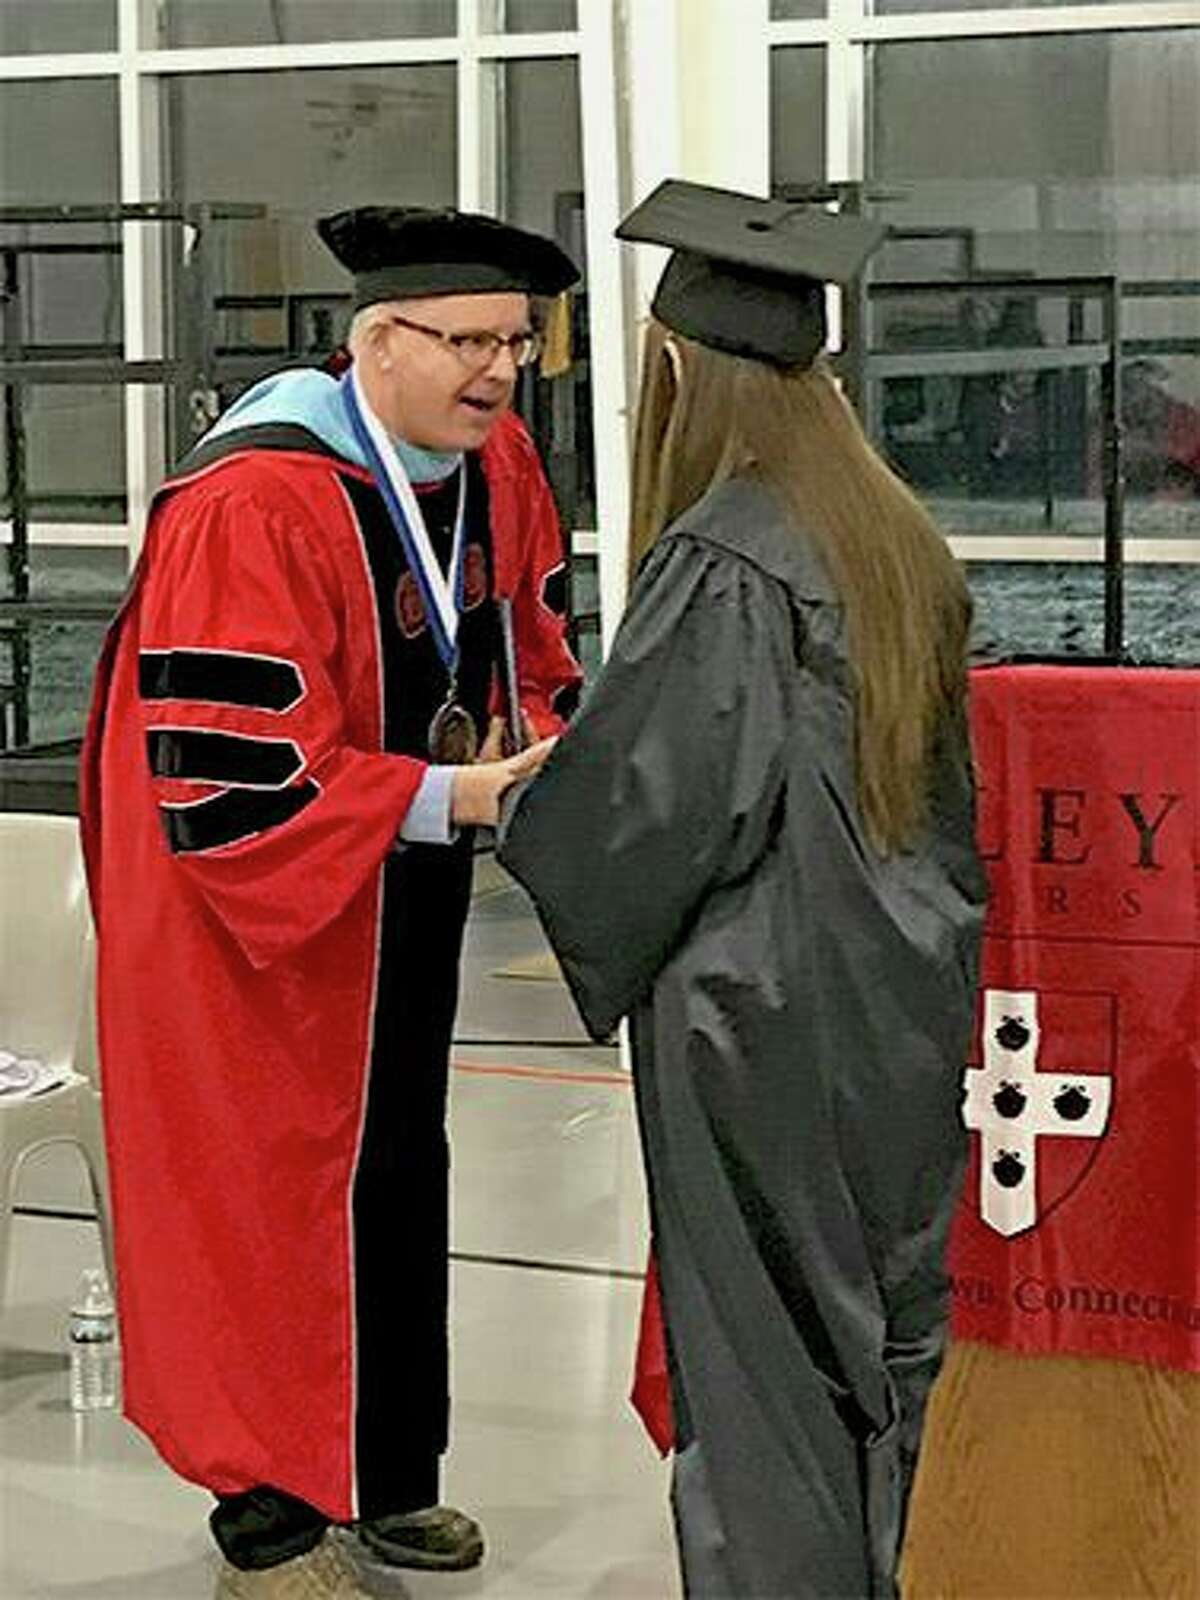 Tracy Shumaker, one of the seven women who received her associate's degree through Wesleyan University's Center for Prison Education, spoke during the recent graduation ceremony at York Correctional Institution in Niantic.